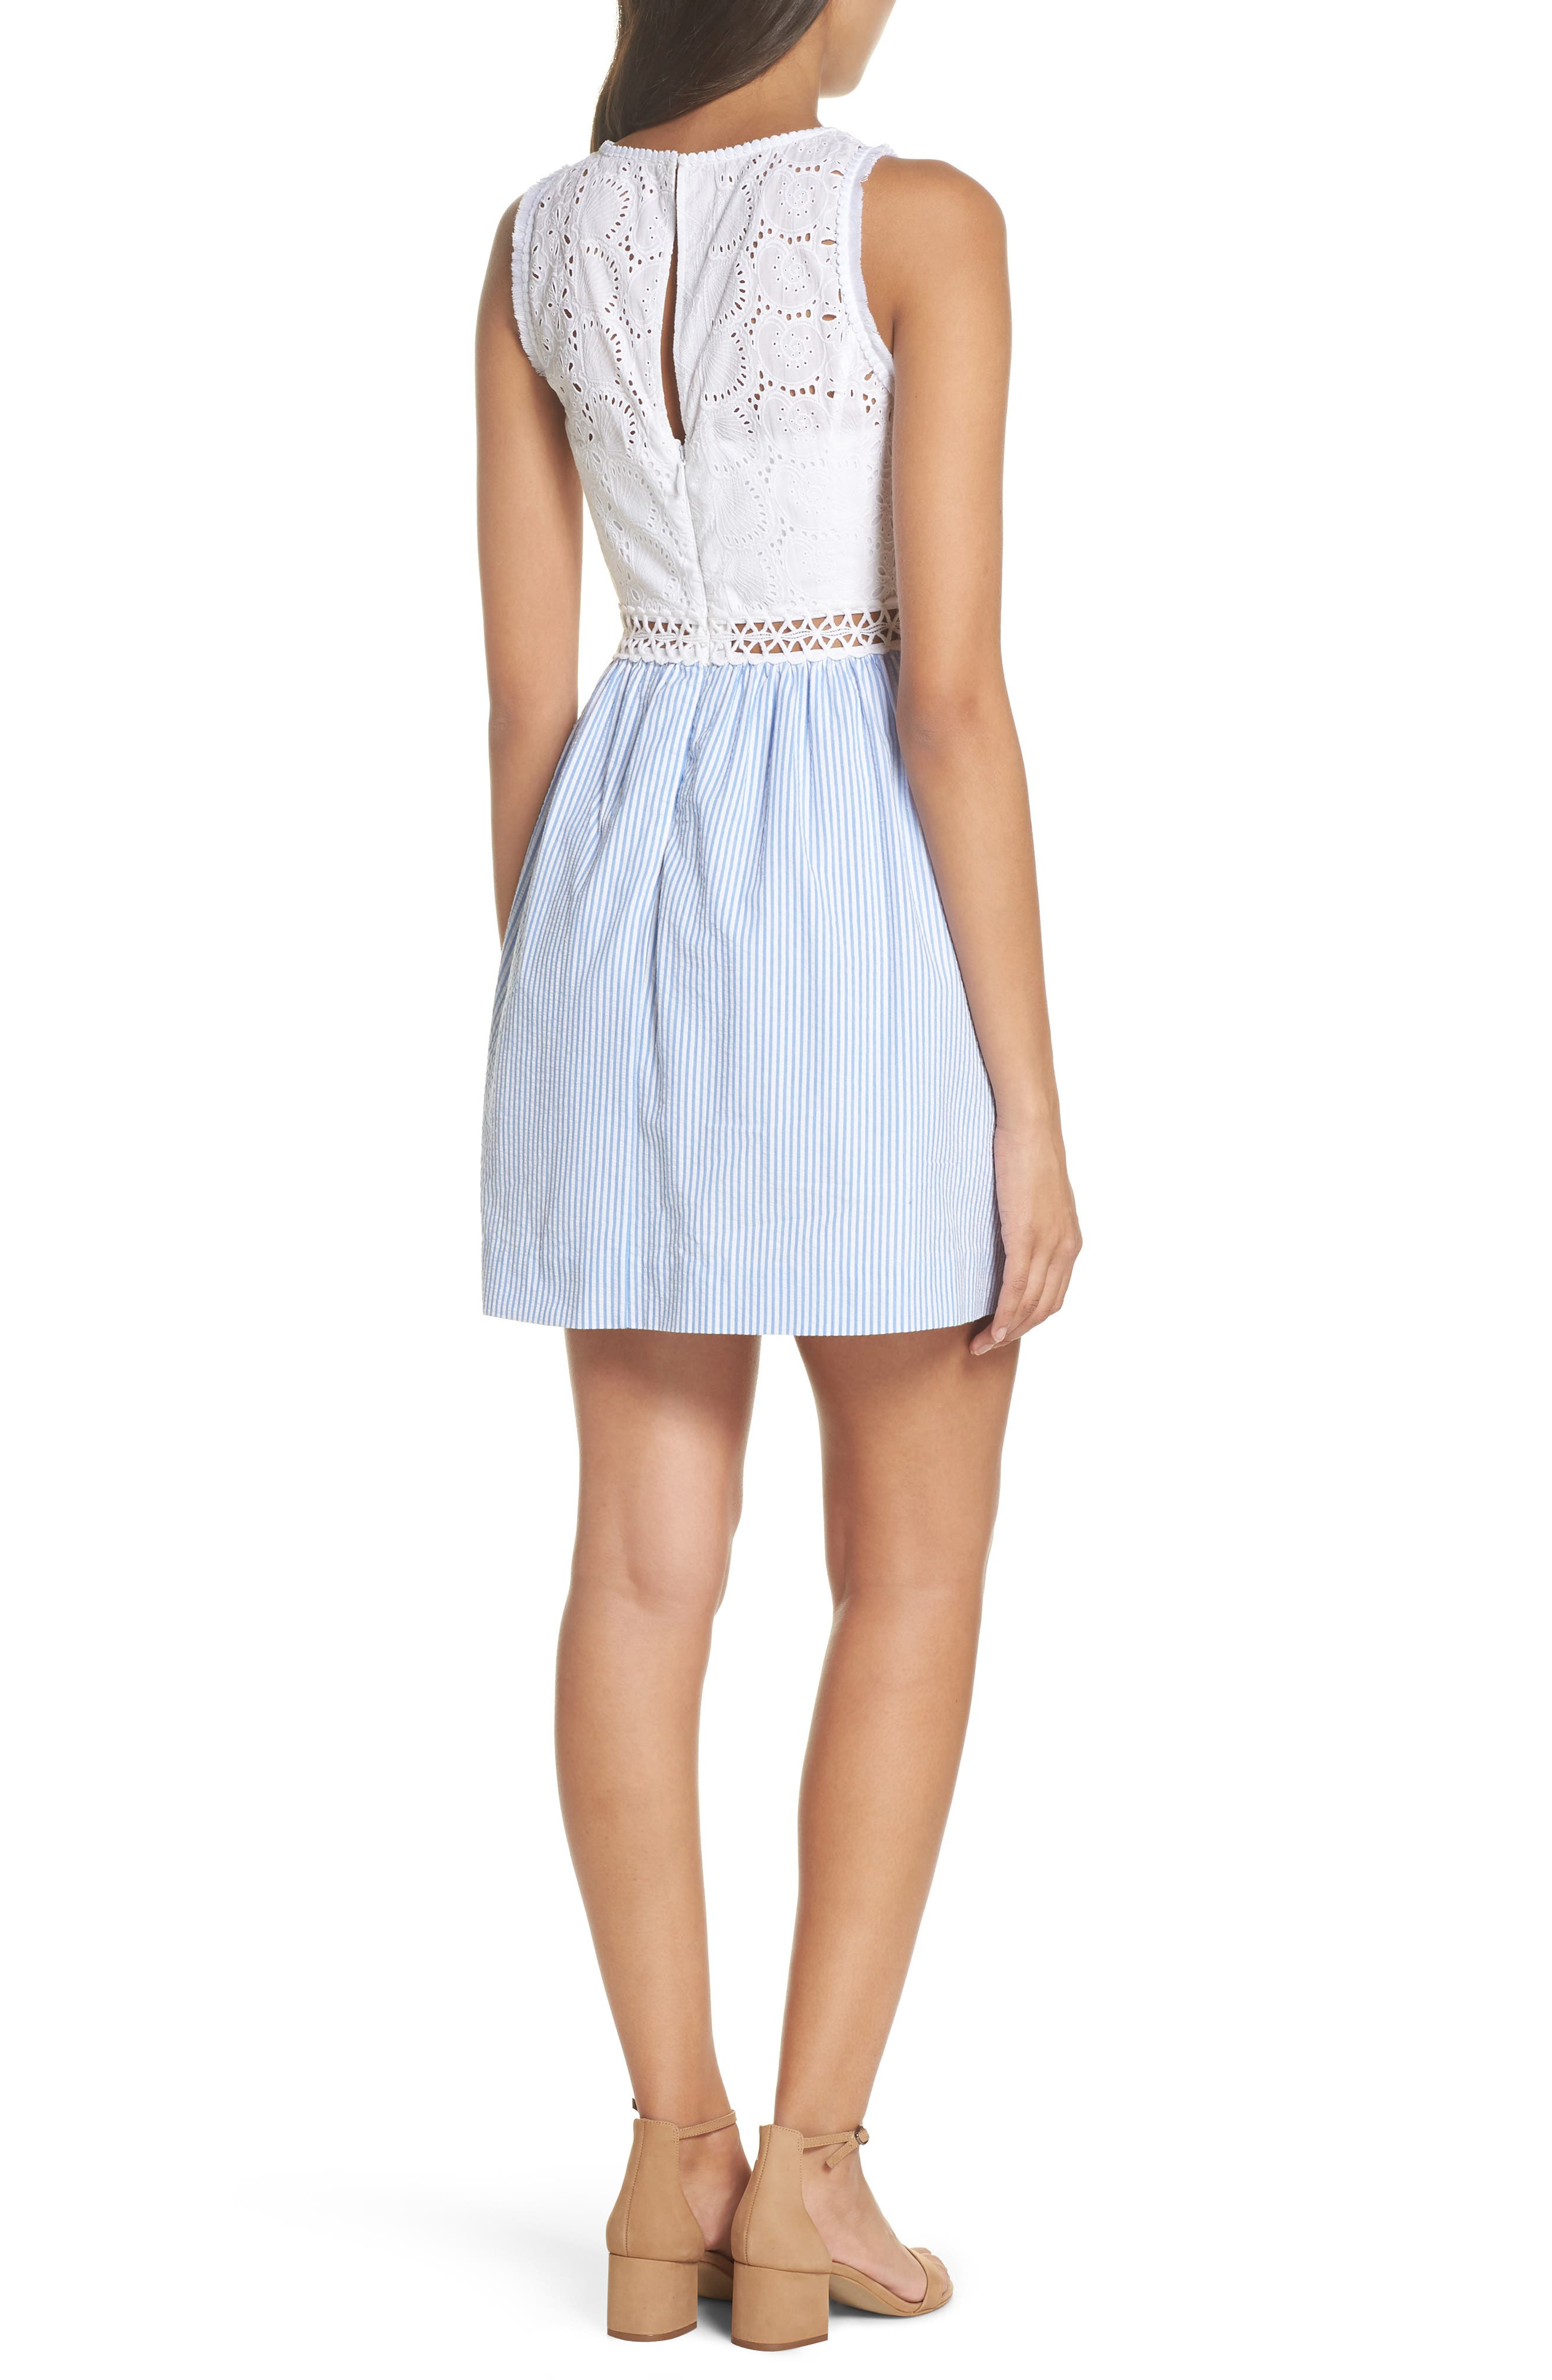 Lilly Pullitzer<sup>®</sup> Alivia Eyelet & Seersucker Fit & Flare Dress,                             Alternate thumbnail 2, color,                             BENNET BLUE YARD DYED STRIPE